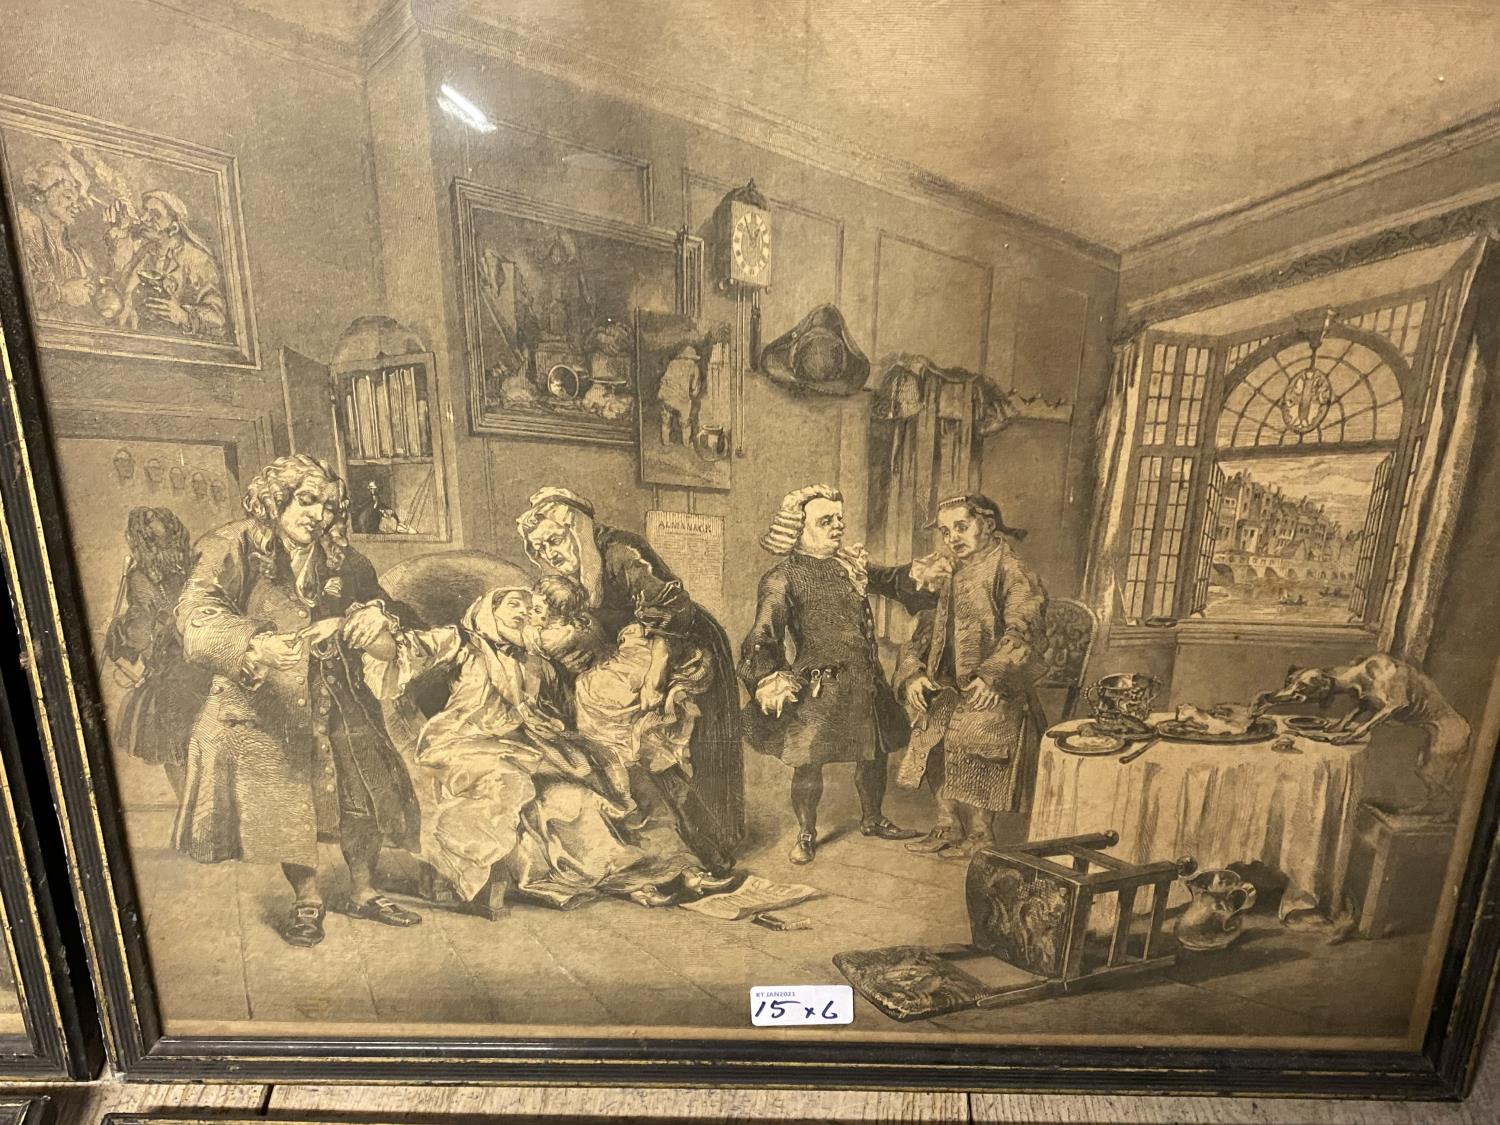 Six Hogarth black and white engravings, various plates, including Marriage a la Mode, in original - Image 6 of 8